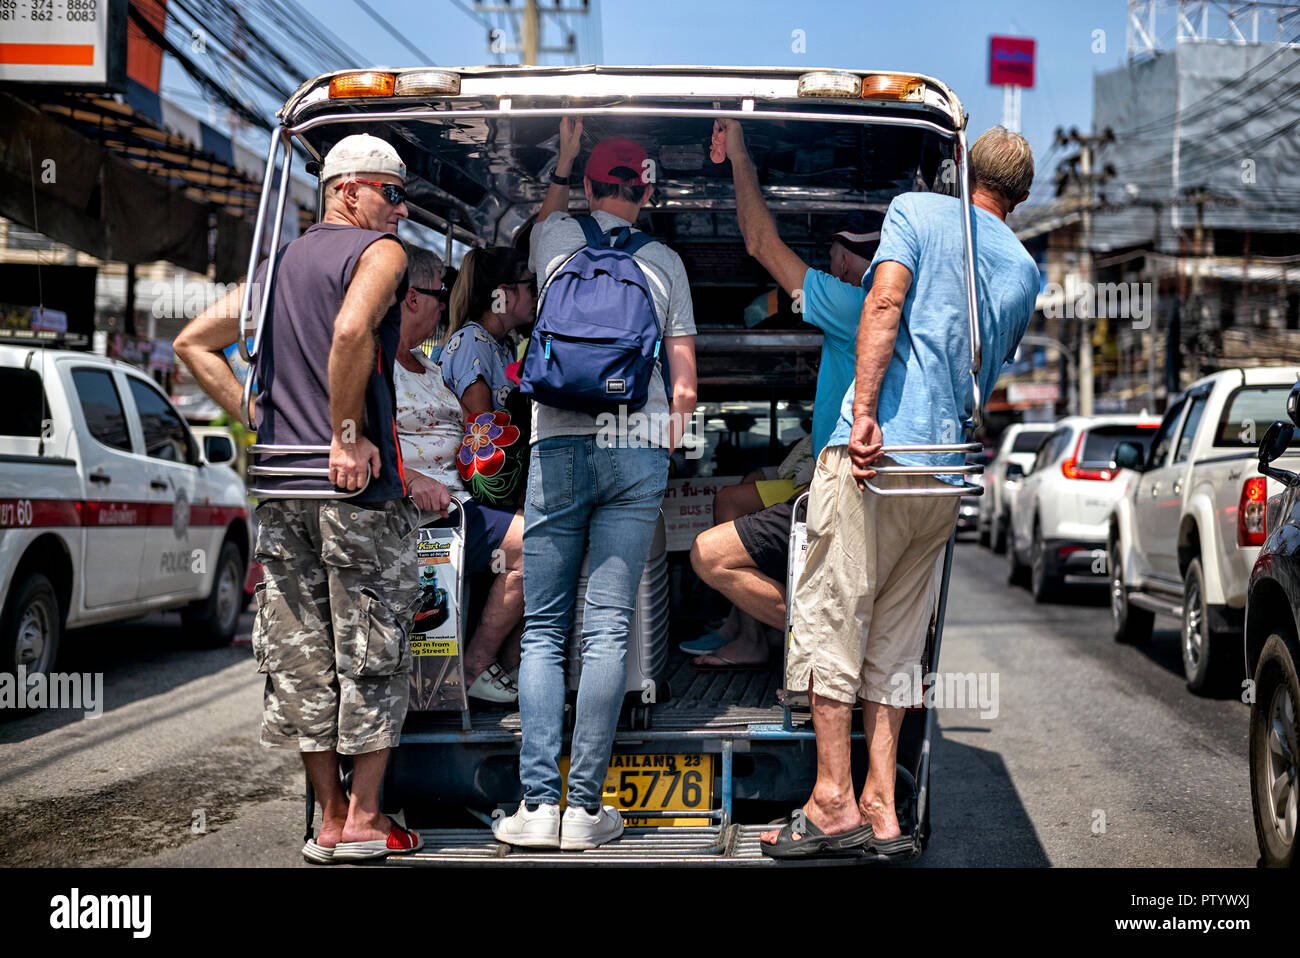 People riding on a Thailand songtheaw public baht bus - Stock Image